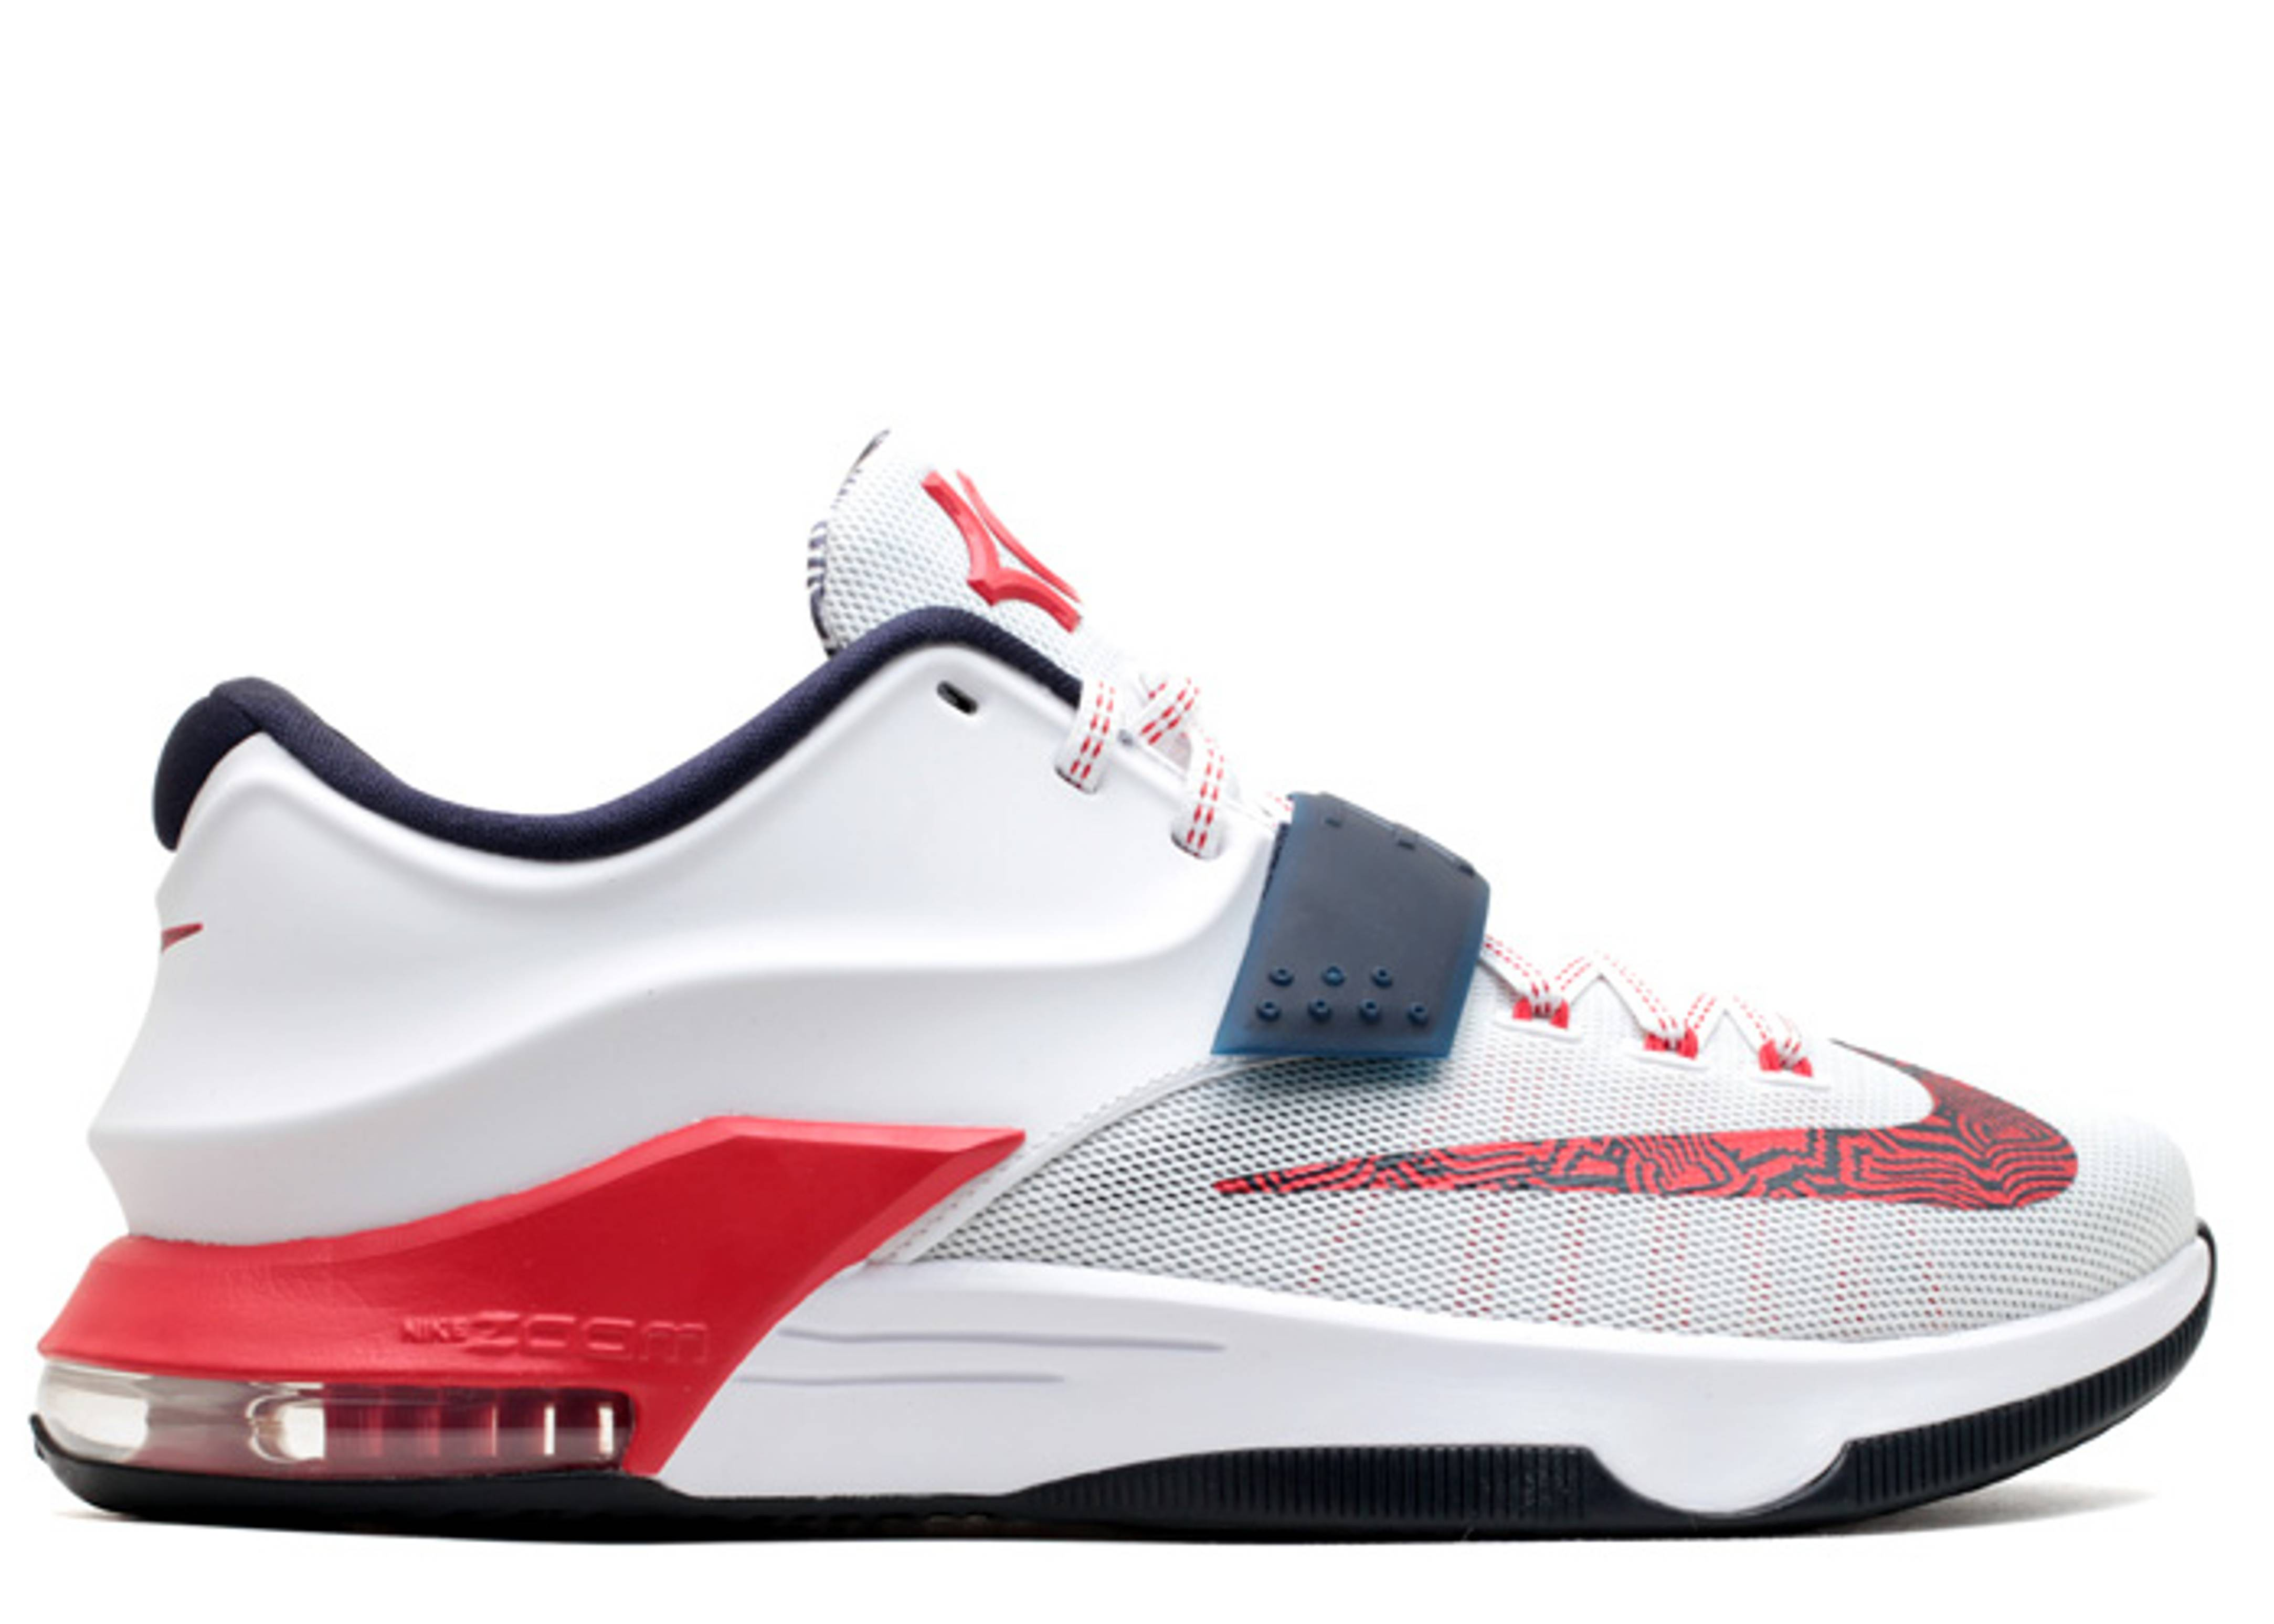 100% authentic 63d17 79d20 nike. kd 7